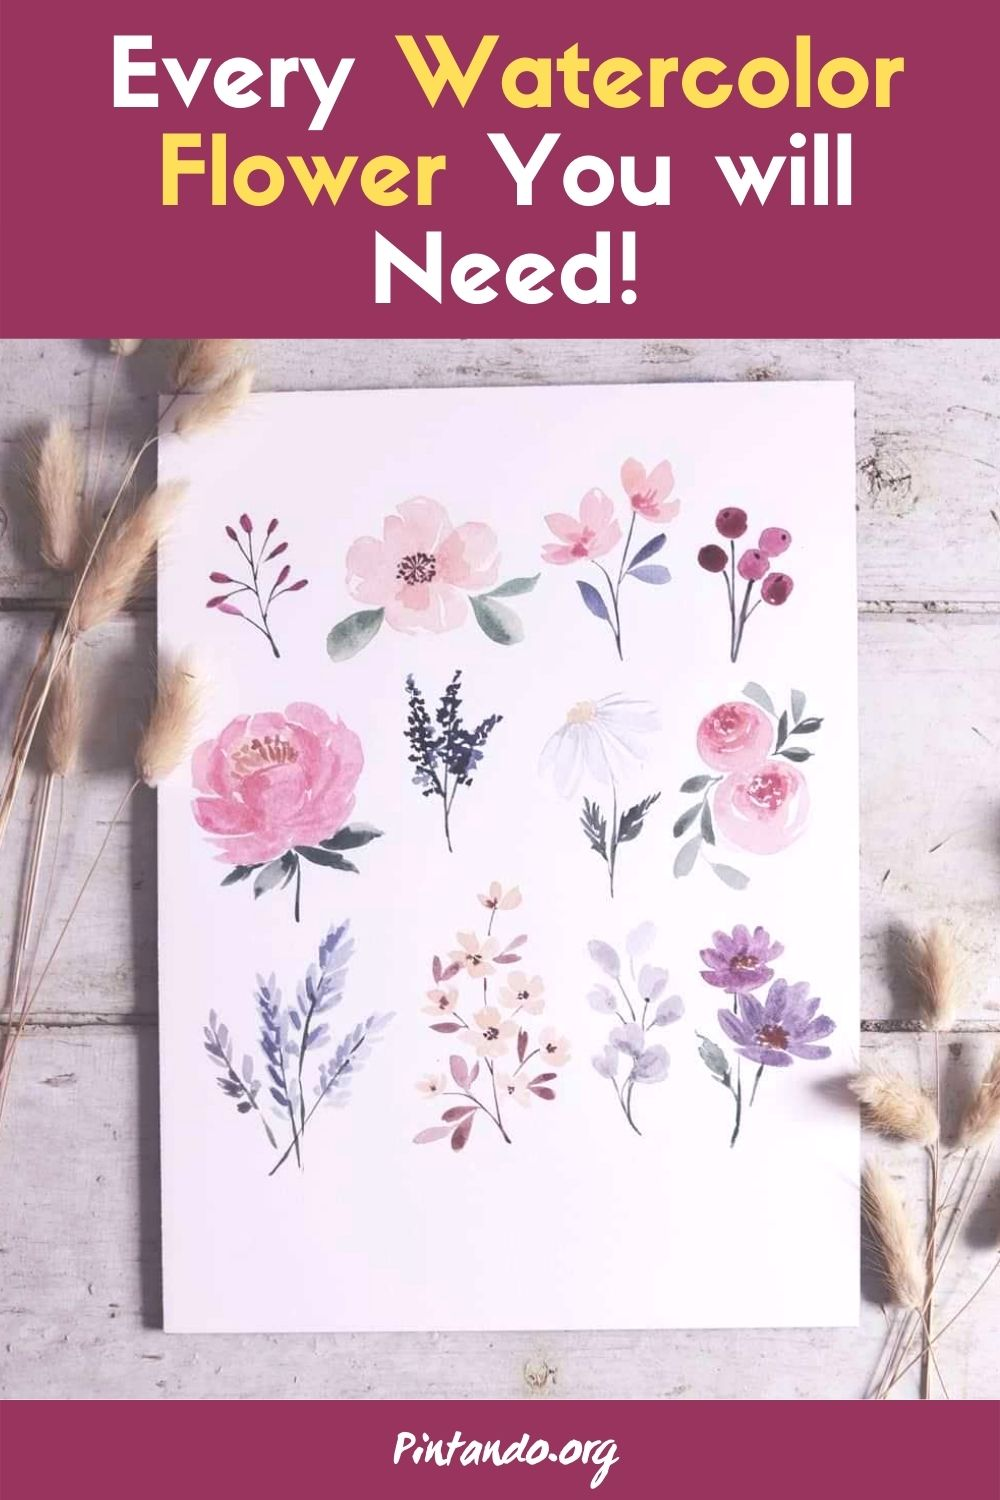 Every Watercolor Flower You will Ever Need!